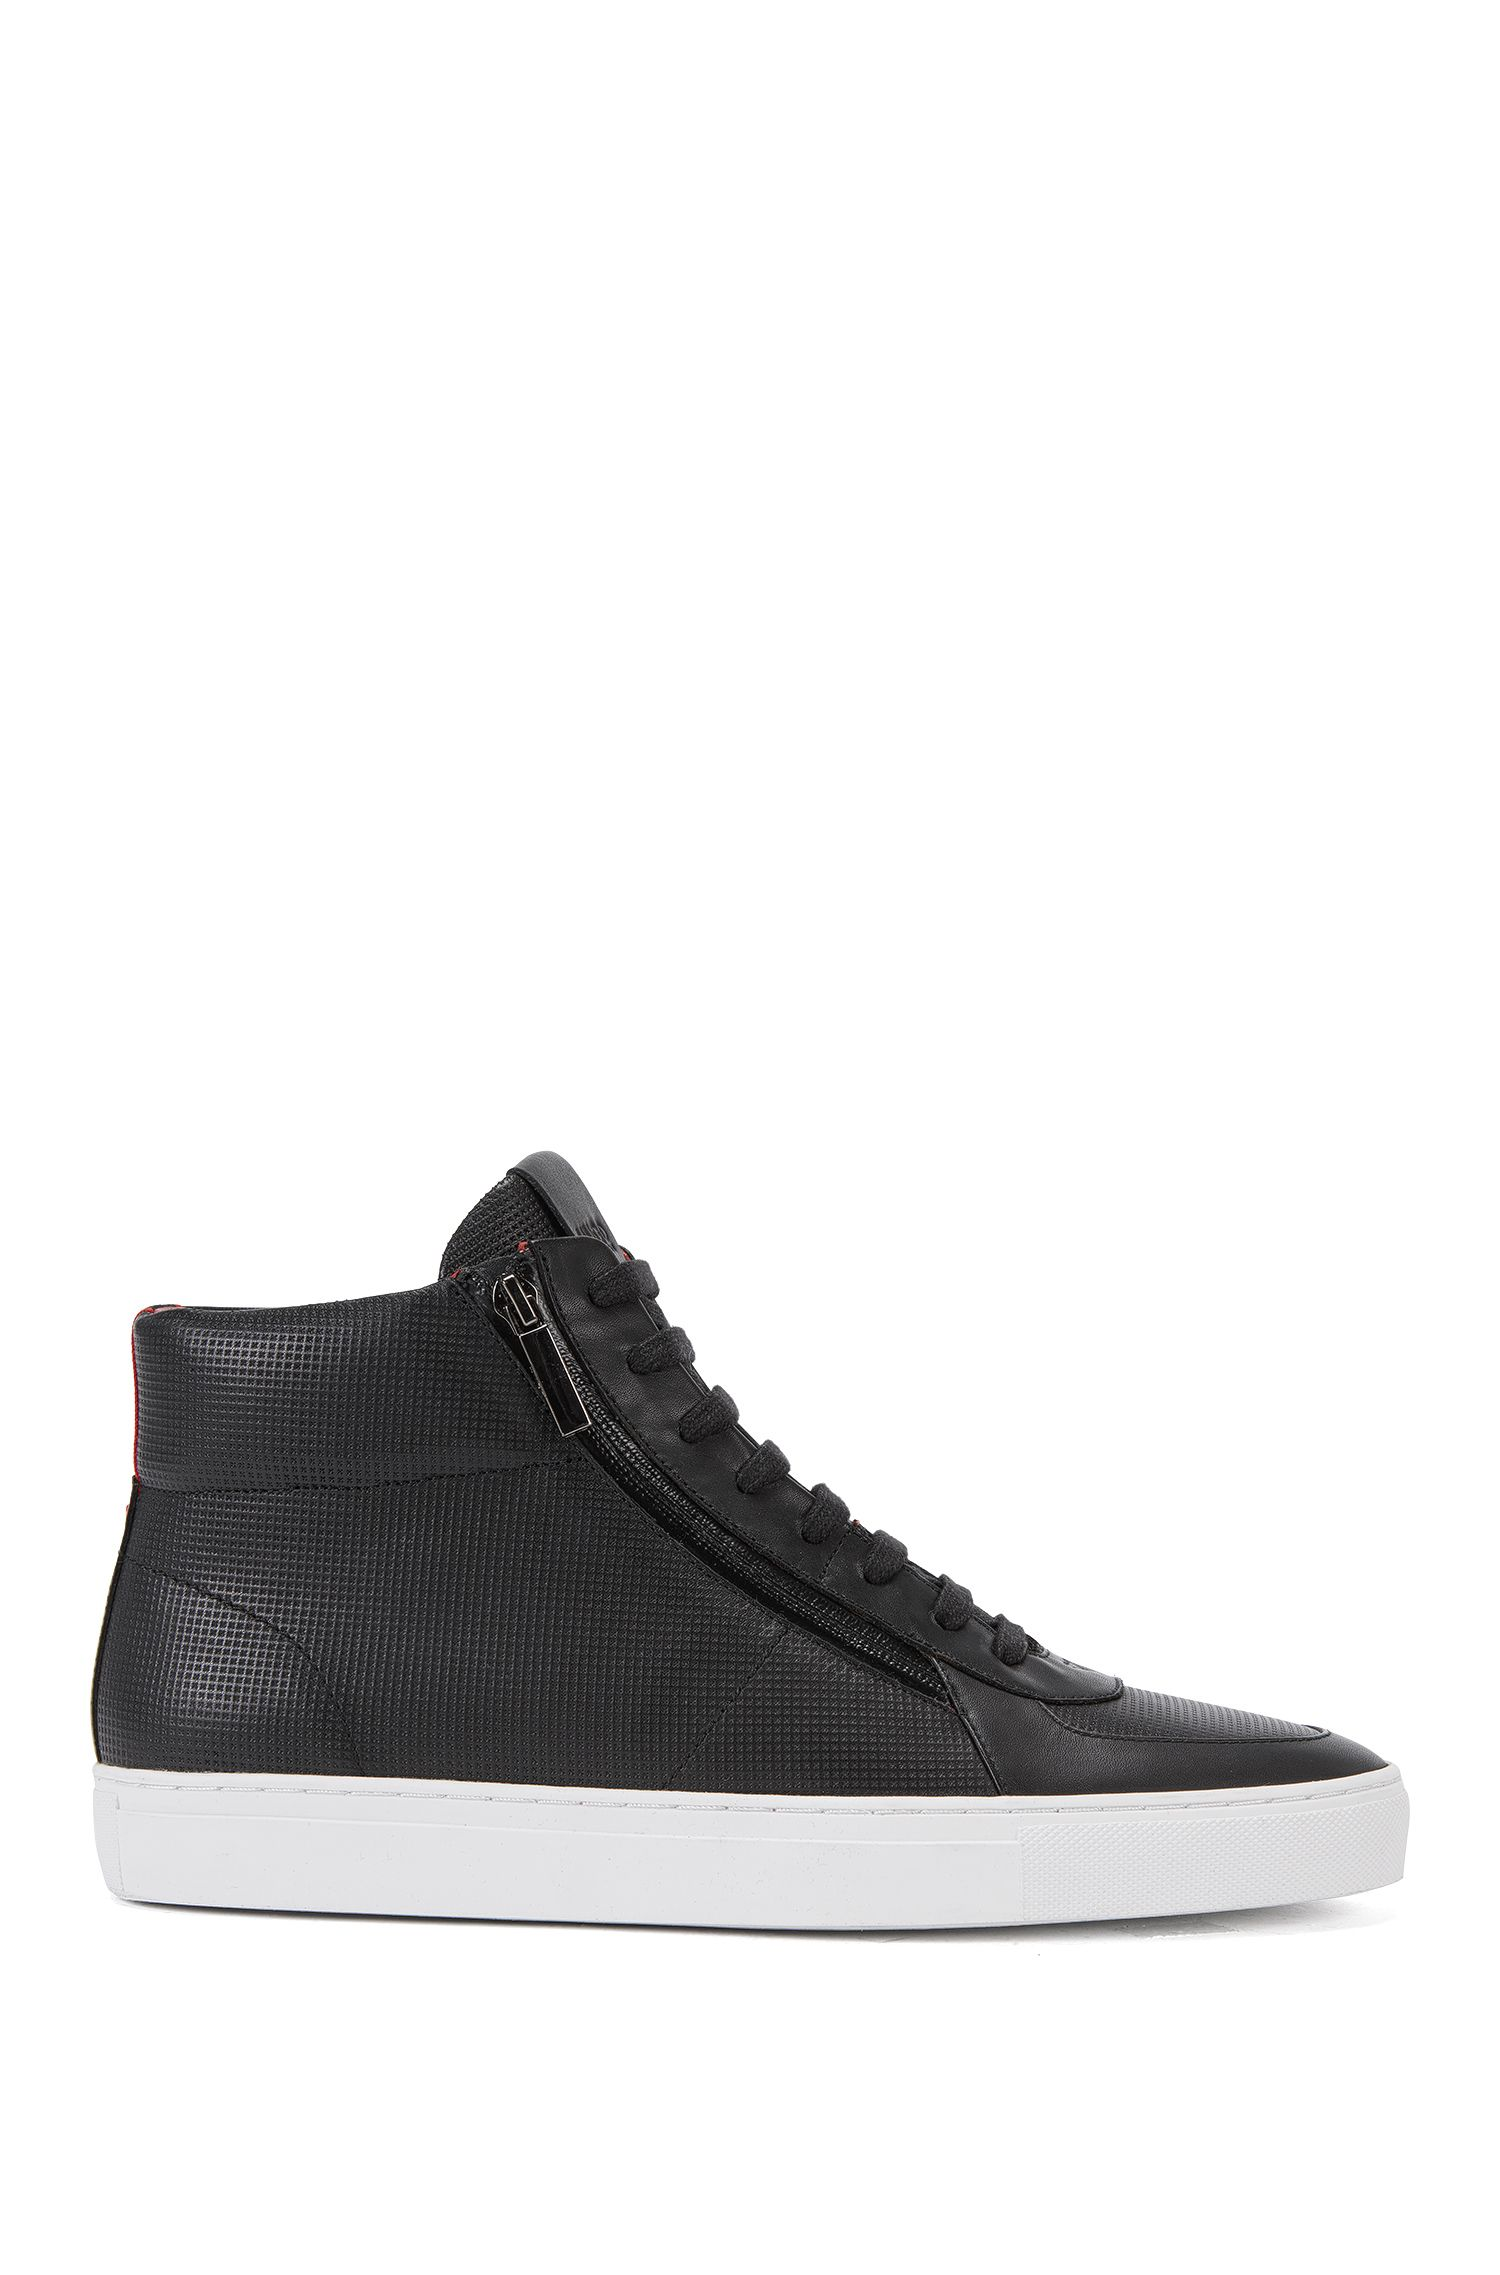 Leather High-Top Sneaker | Futurism Hito Itmtzp, Black